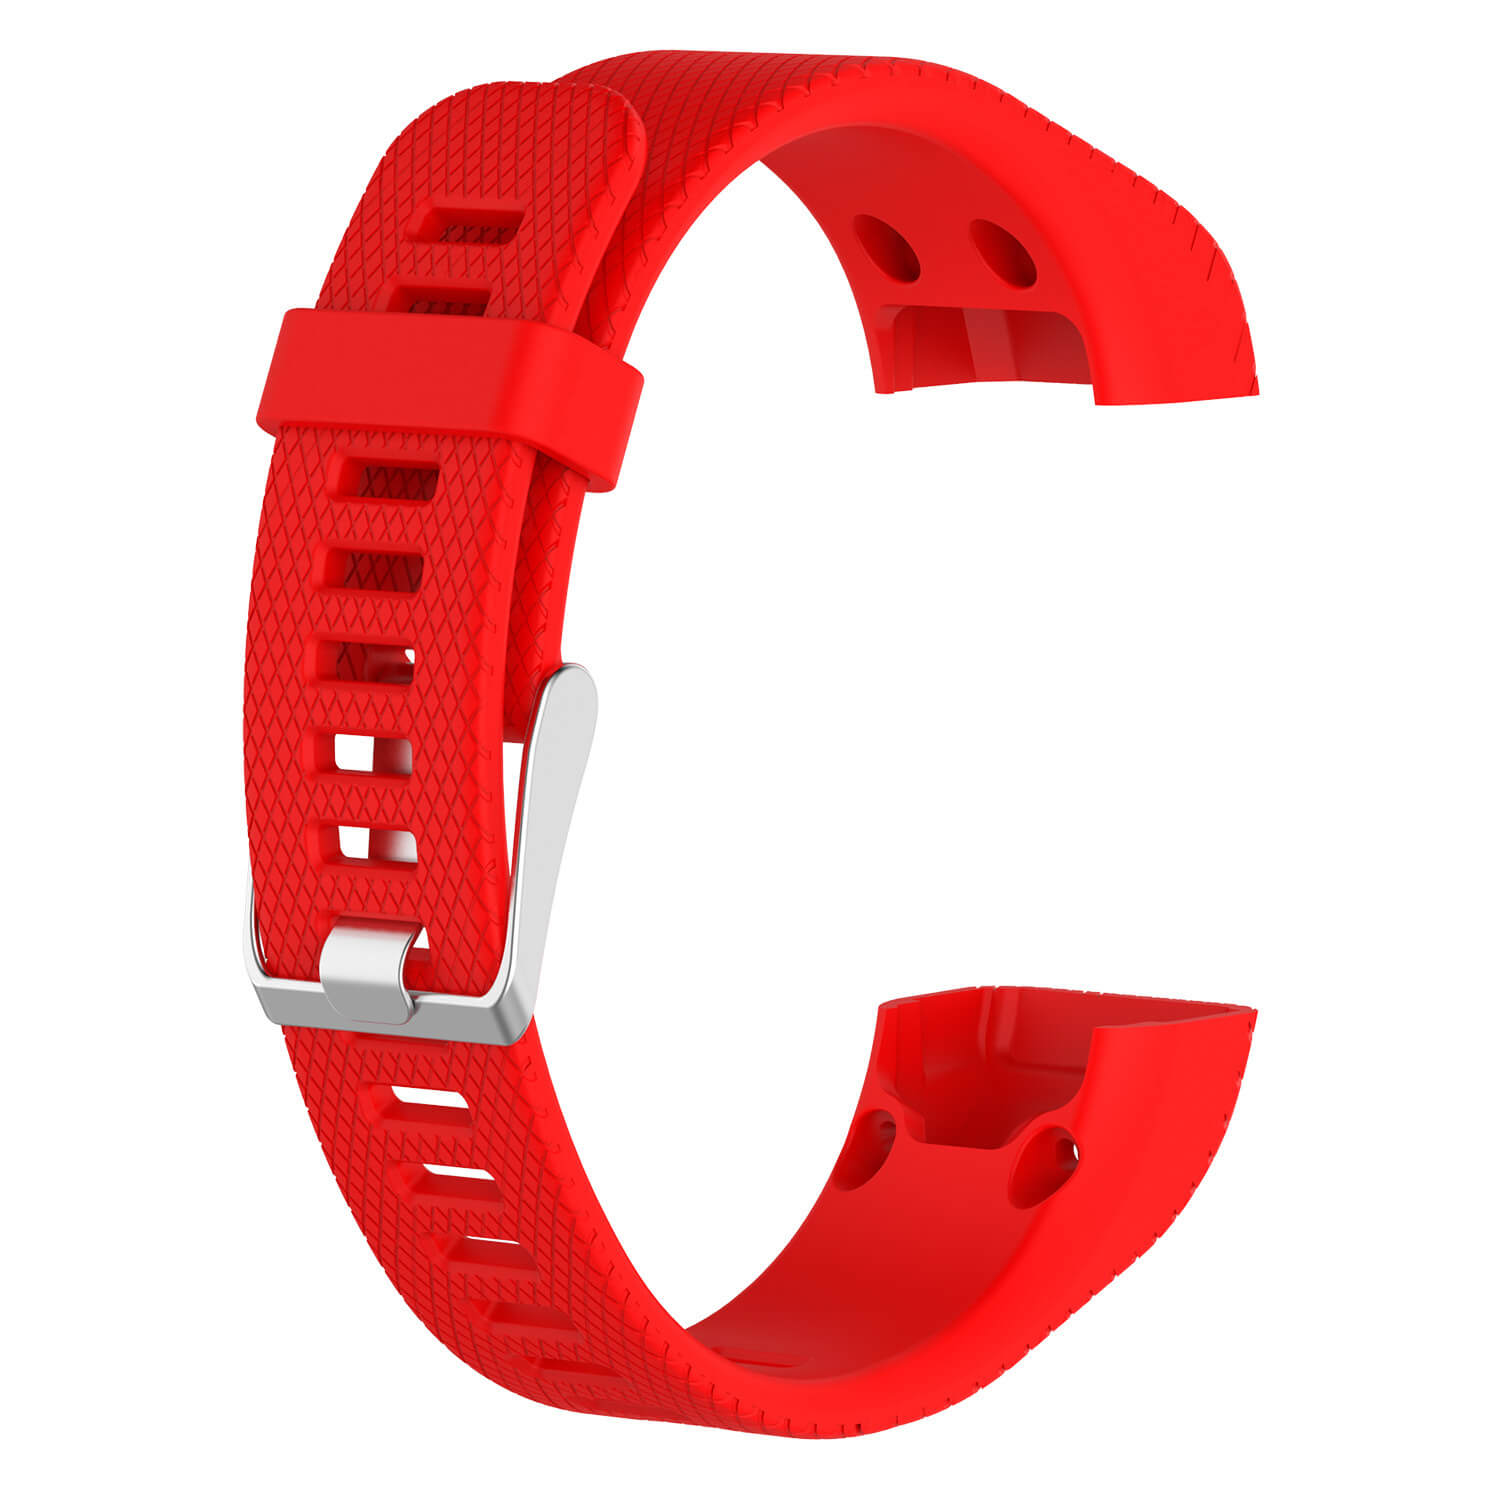 Red Replacement Band for Garmin Approach x40